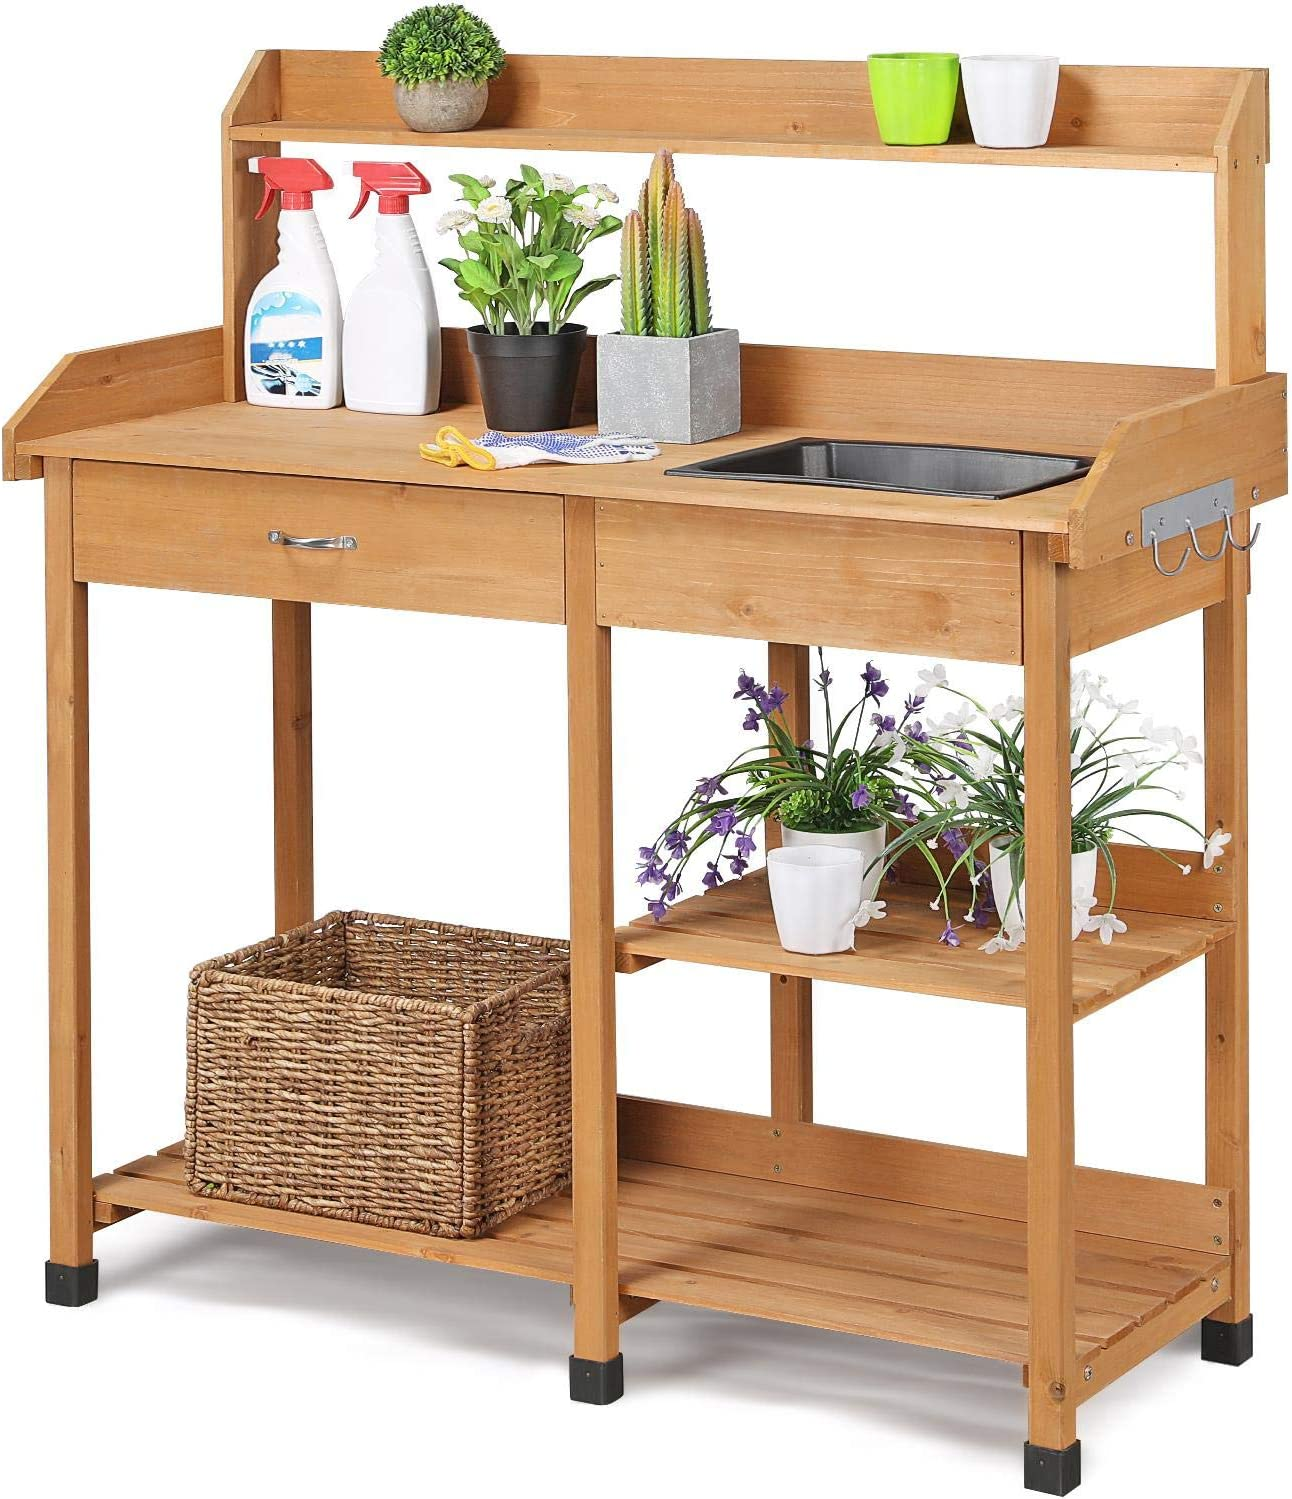 Lakewood 3 Person Swing, Amazon Com Topeakmart Outdoor Garden Potting Bench Potting Table Work Bench With Removable Sink Drawer Rack Shelves Work Station Wood Garden Outdoor